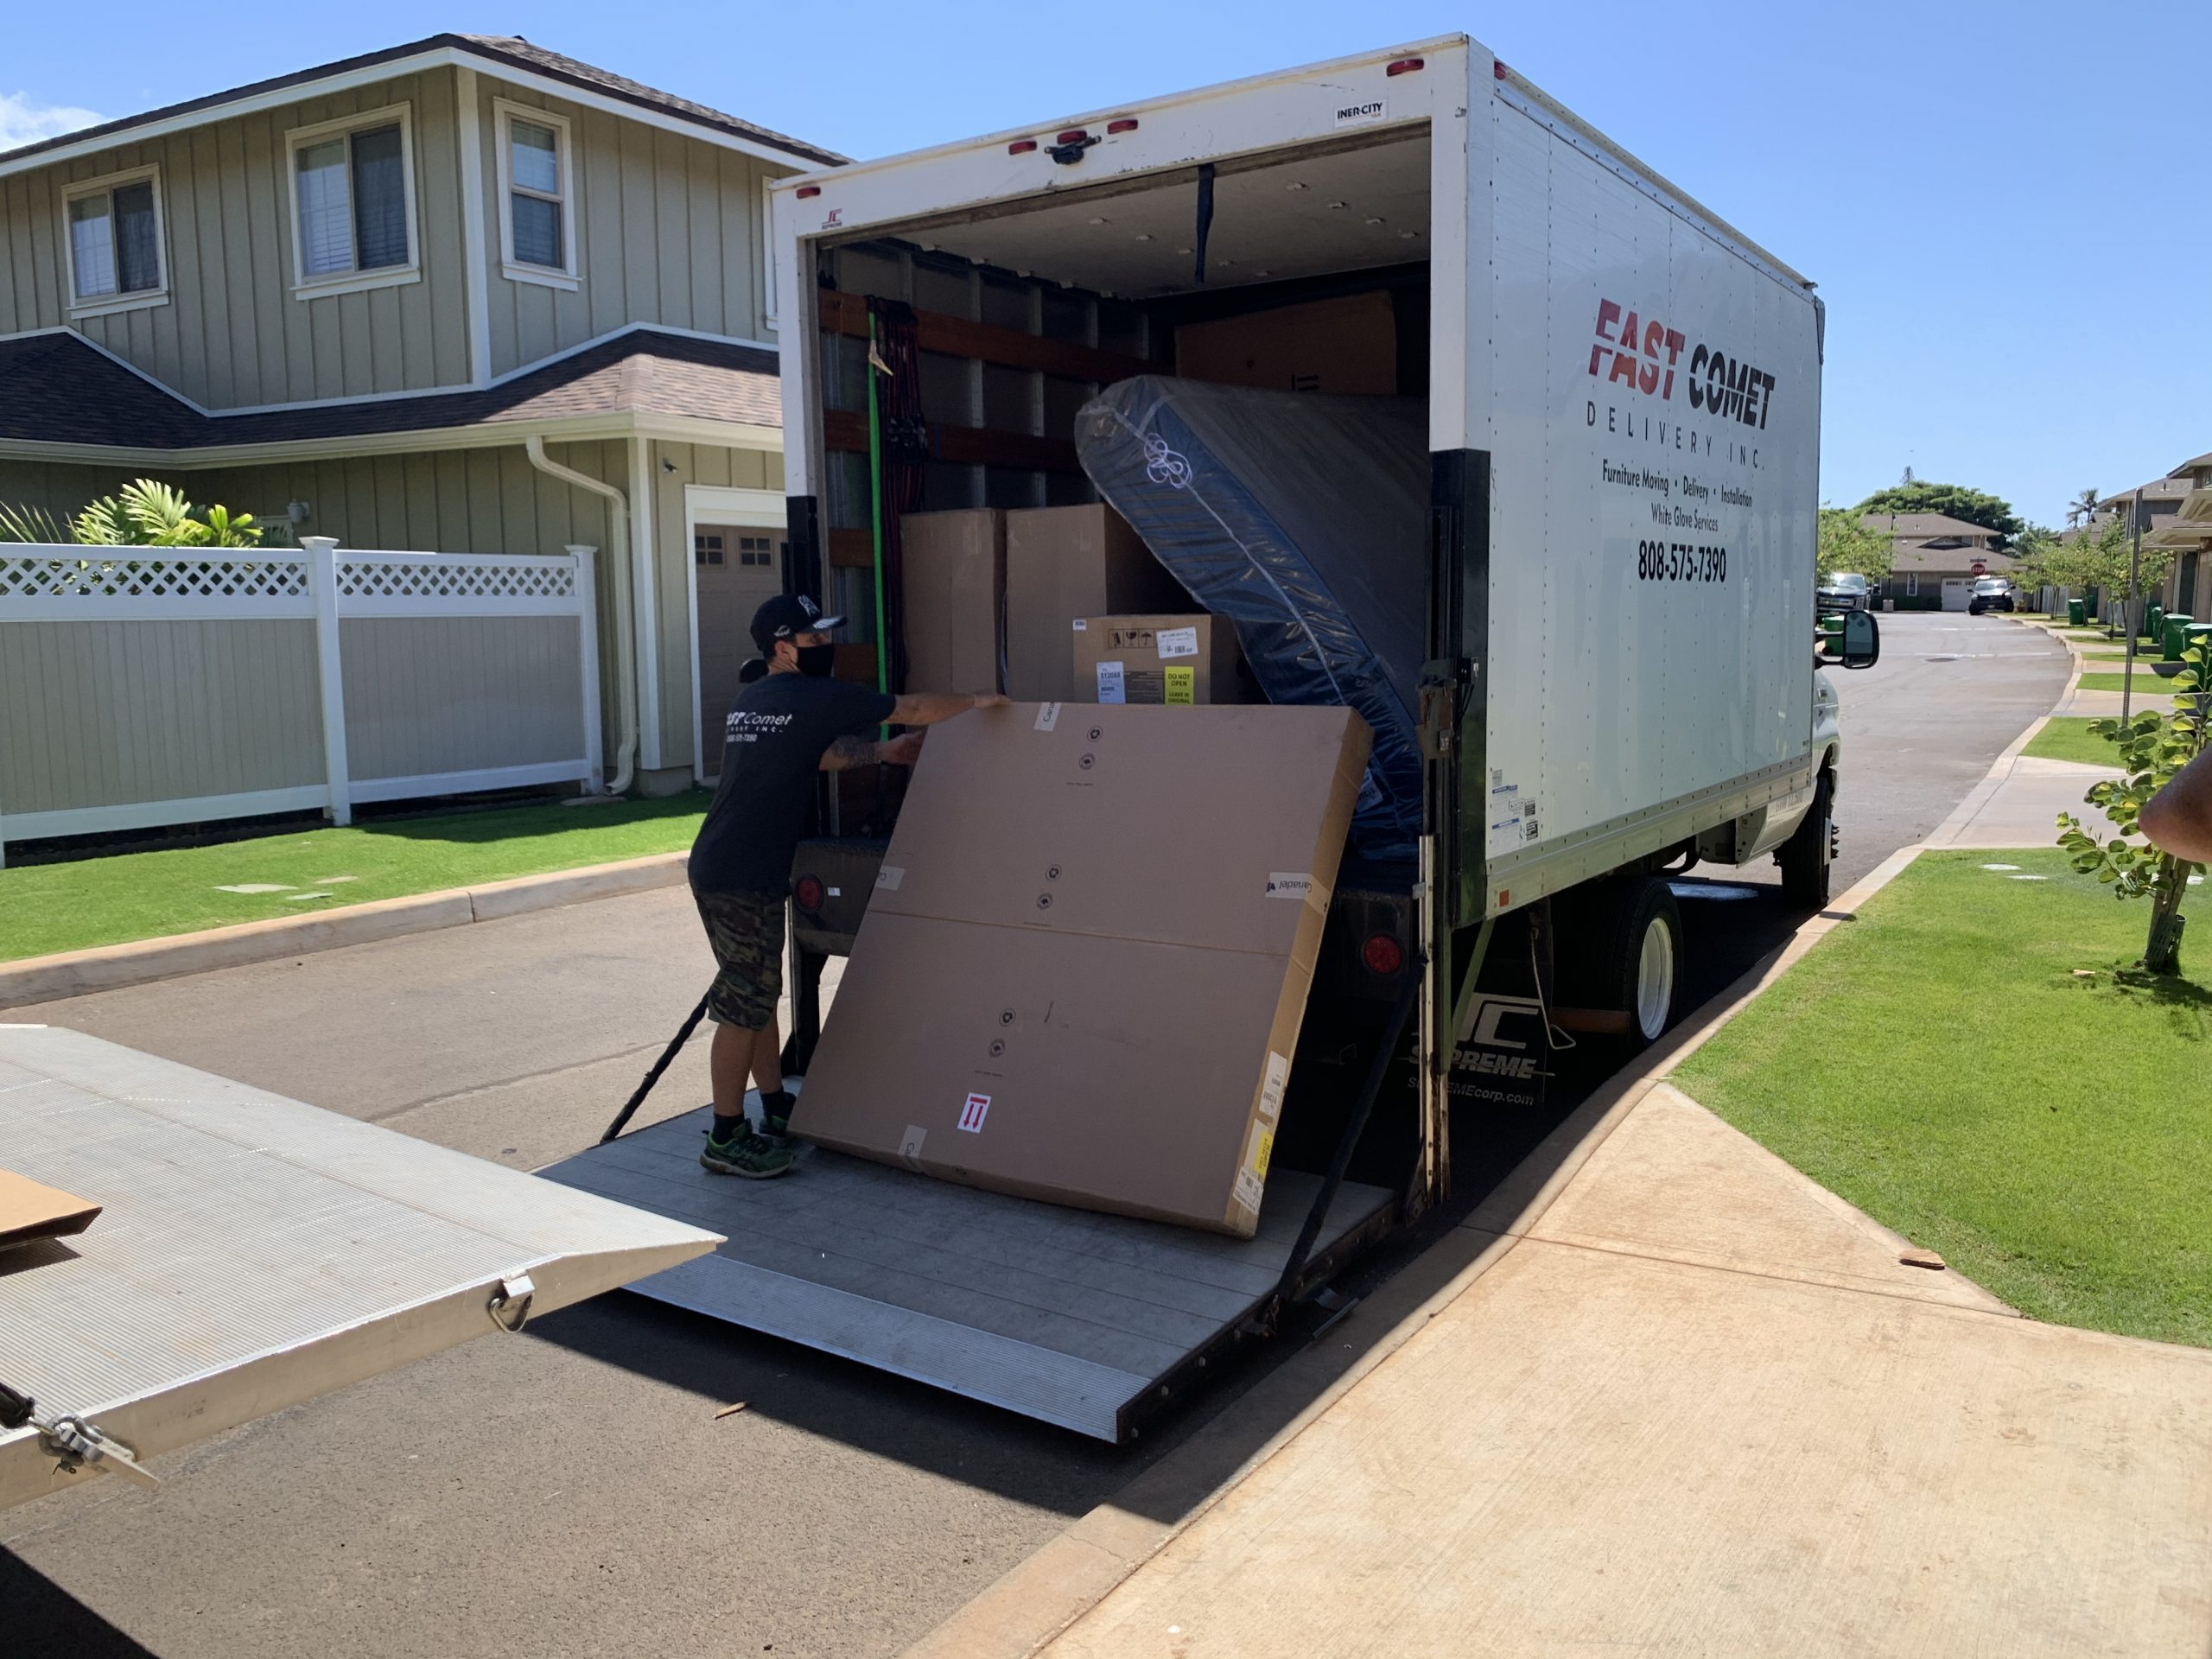 Fast Comet Delivery Truck 6 - Maui Hawaii